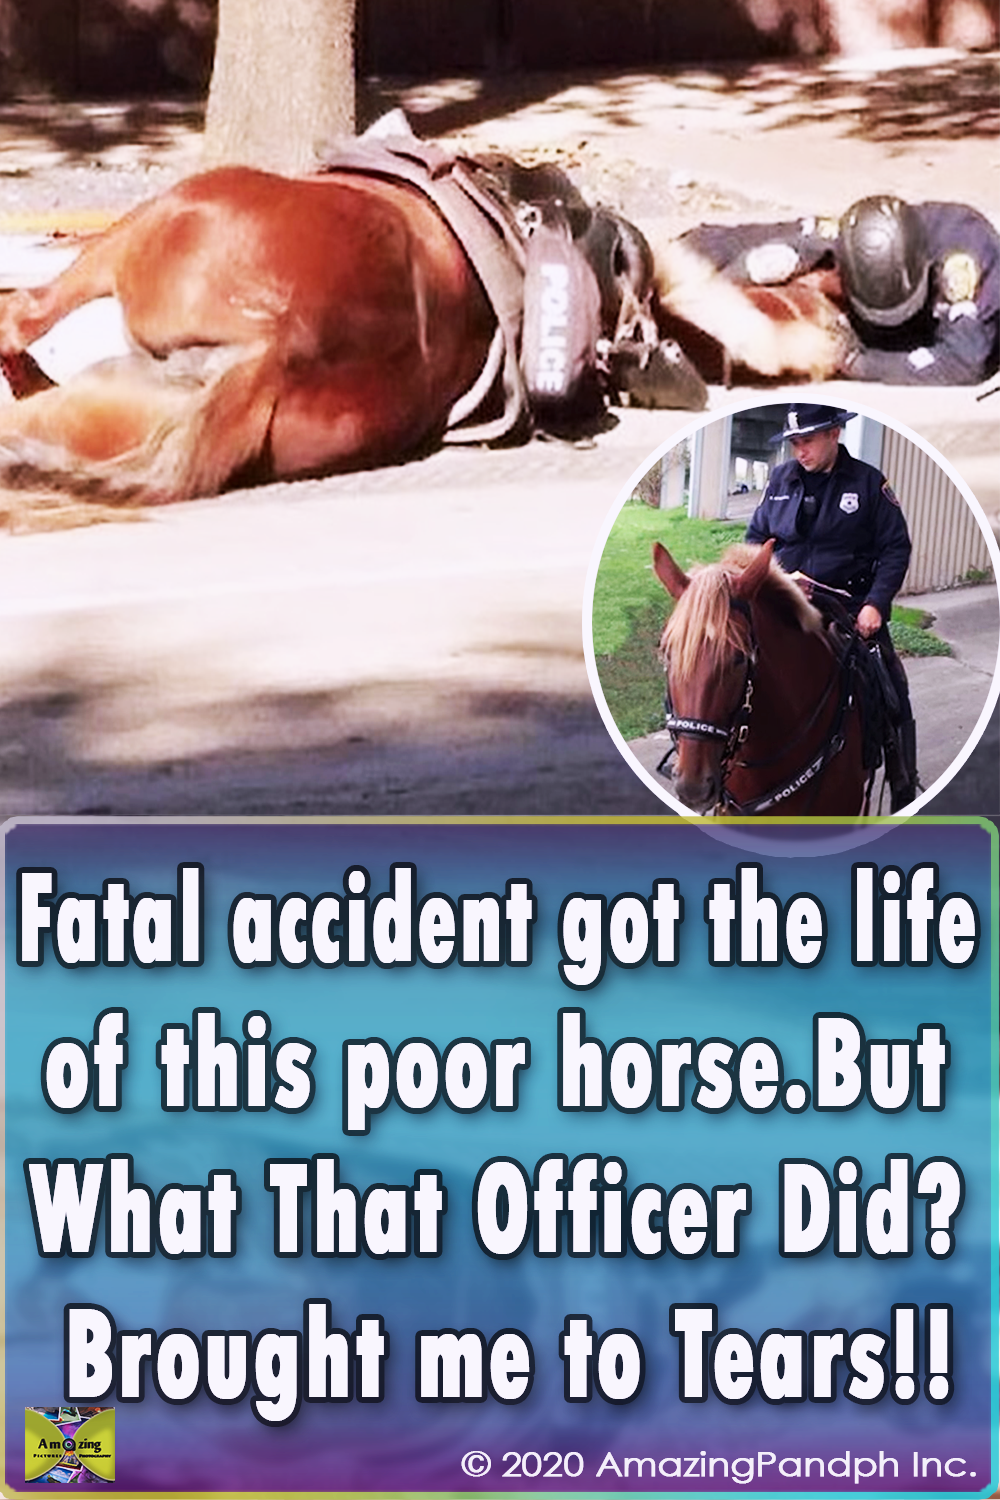 animals, horse, rescue, save, life, helping, accident, car, police horse, fatal accident, hitted by car, last breath,